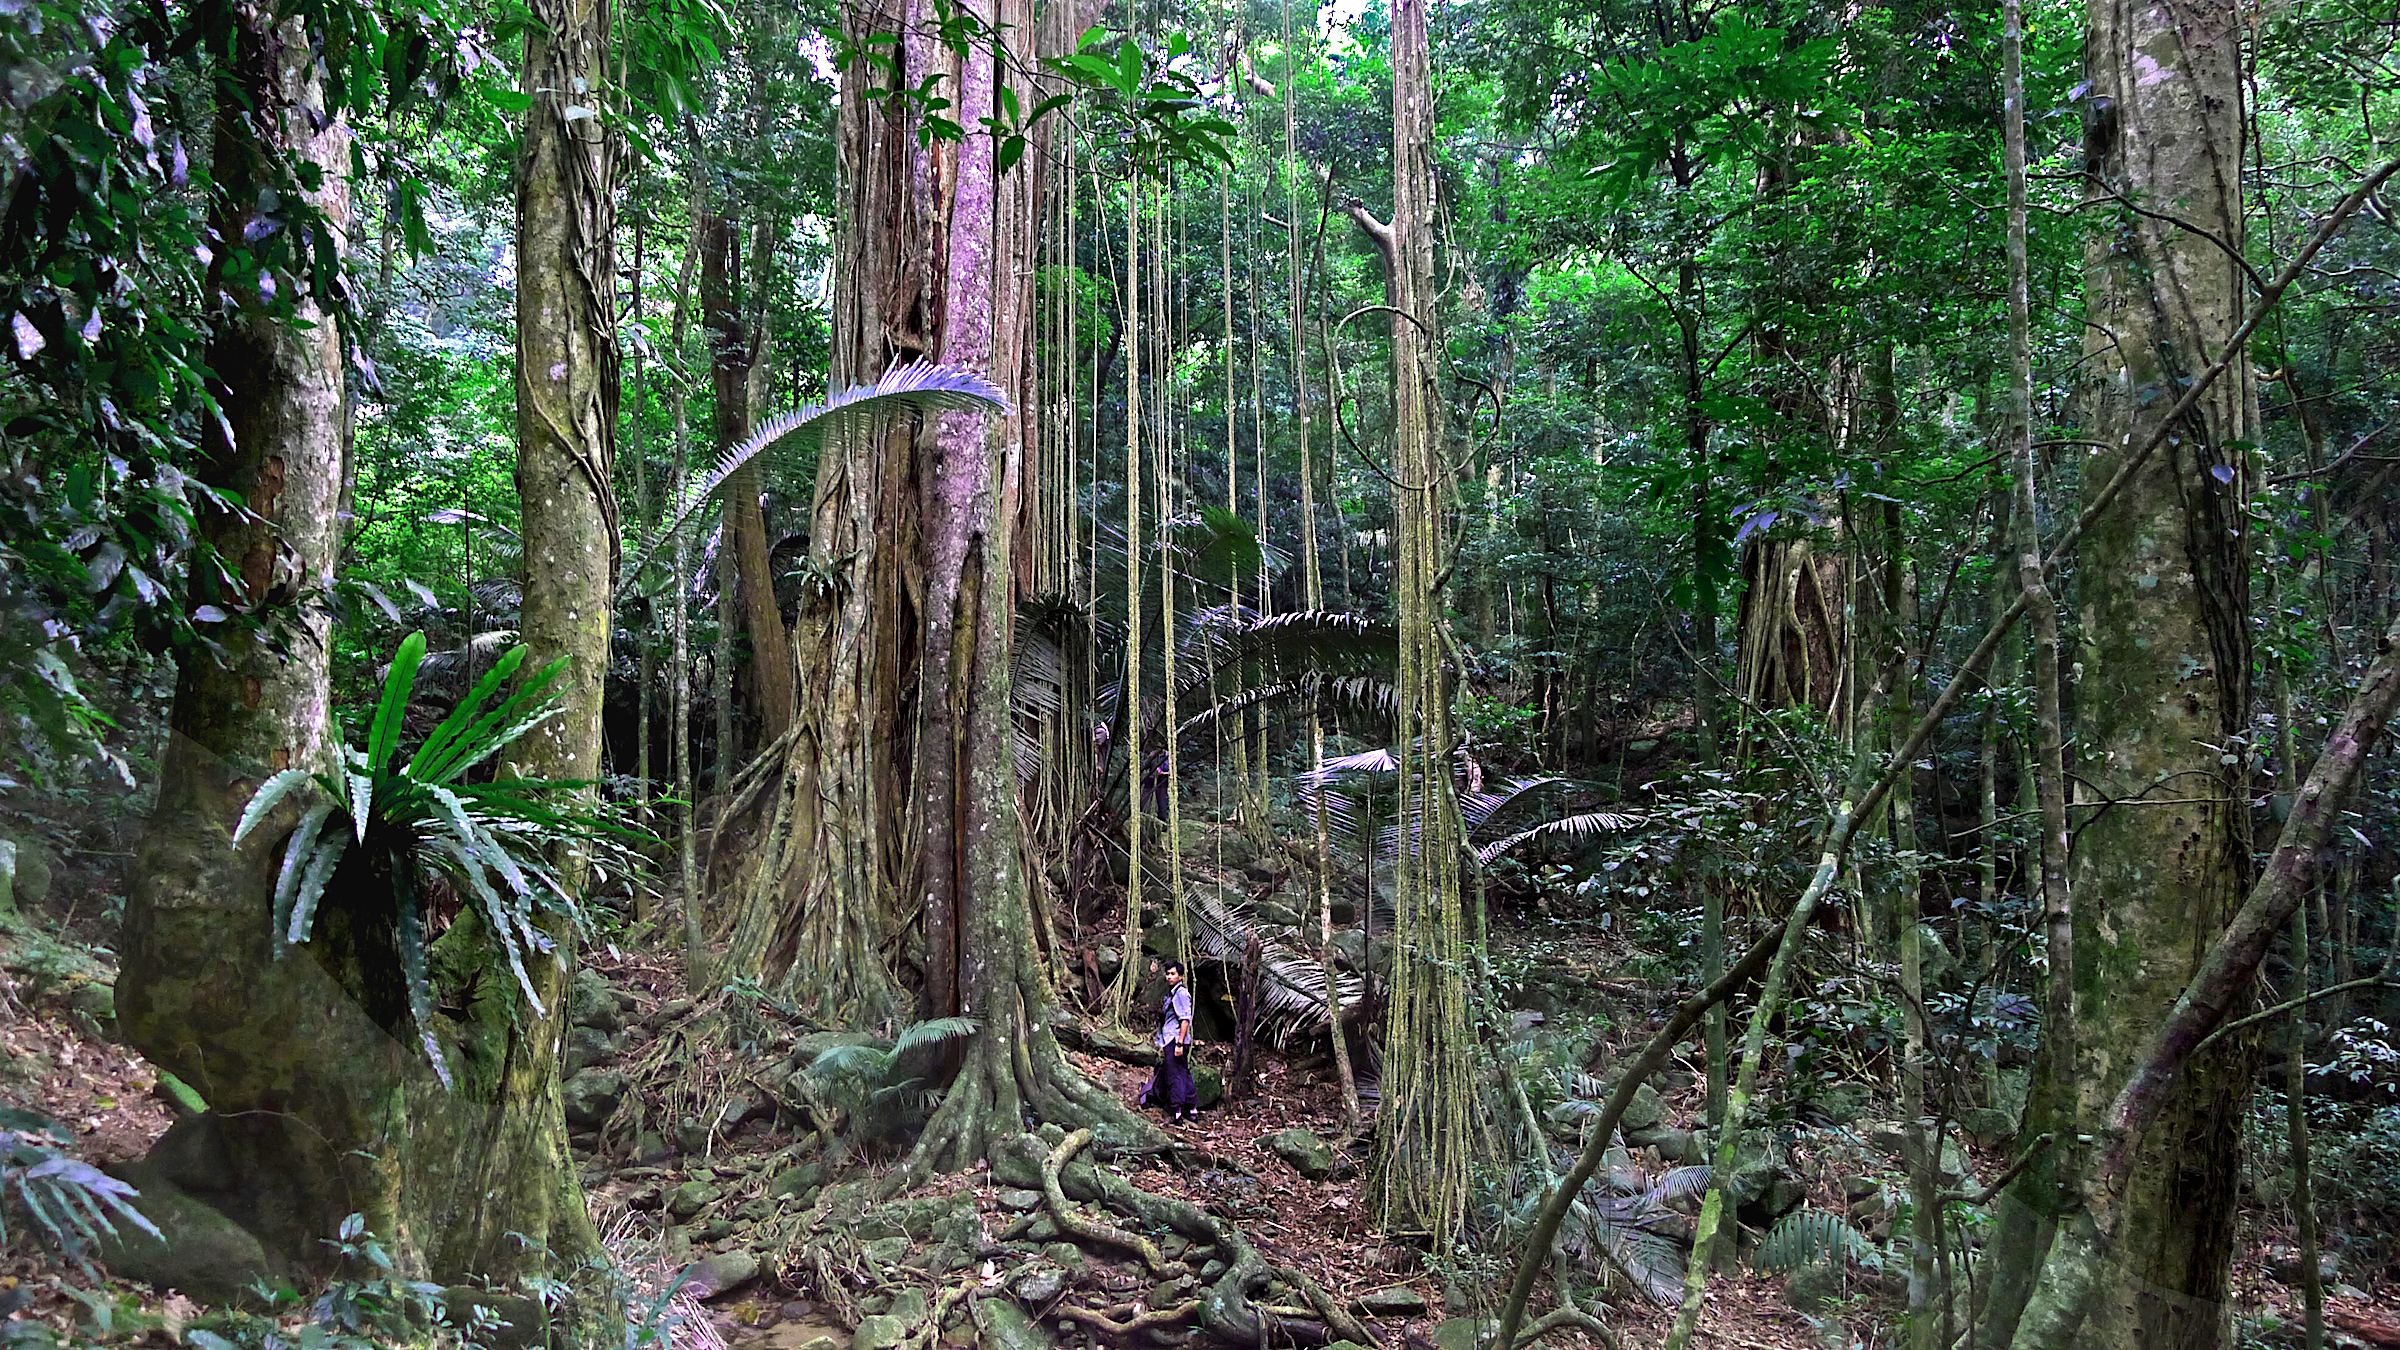 Biologist Bosco Chan stands in an old-growth section of forest in the Hainan Bawangling National Nature Reserve. Photograph courtesy of Kadoorie Farm & Botanic Garden